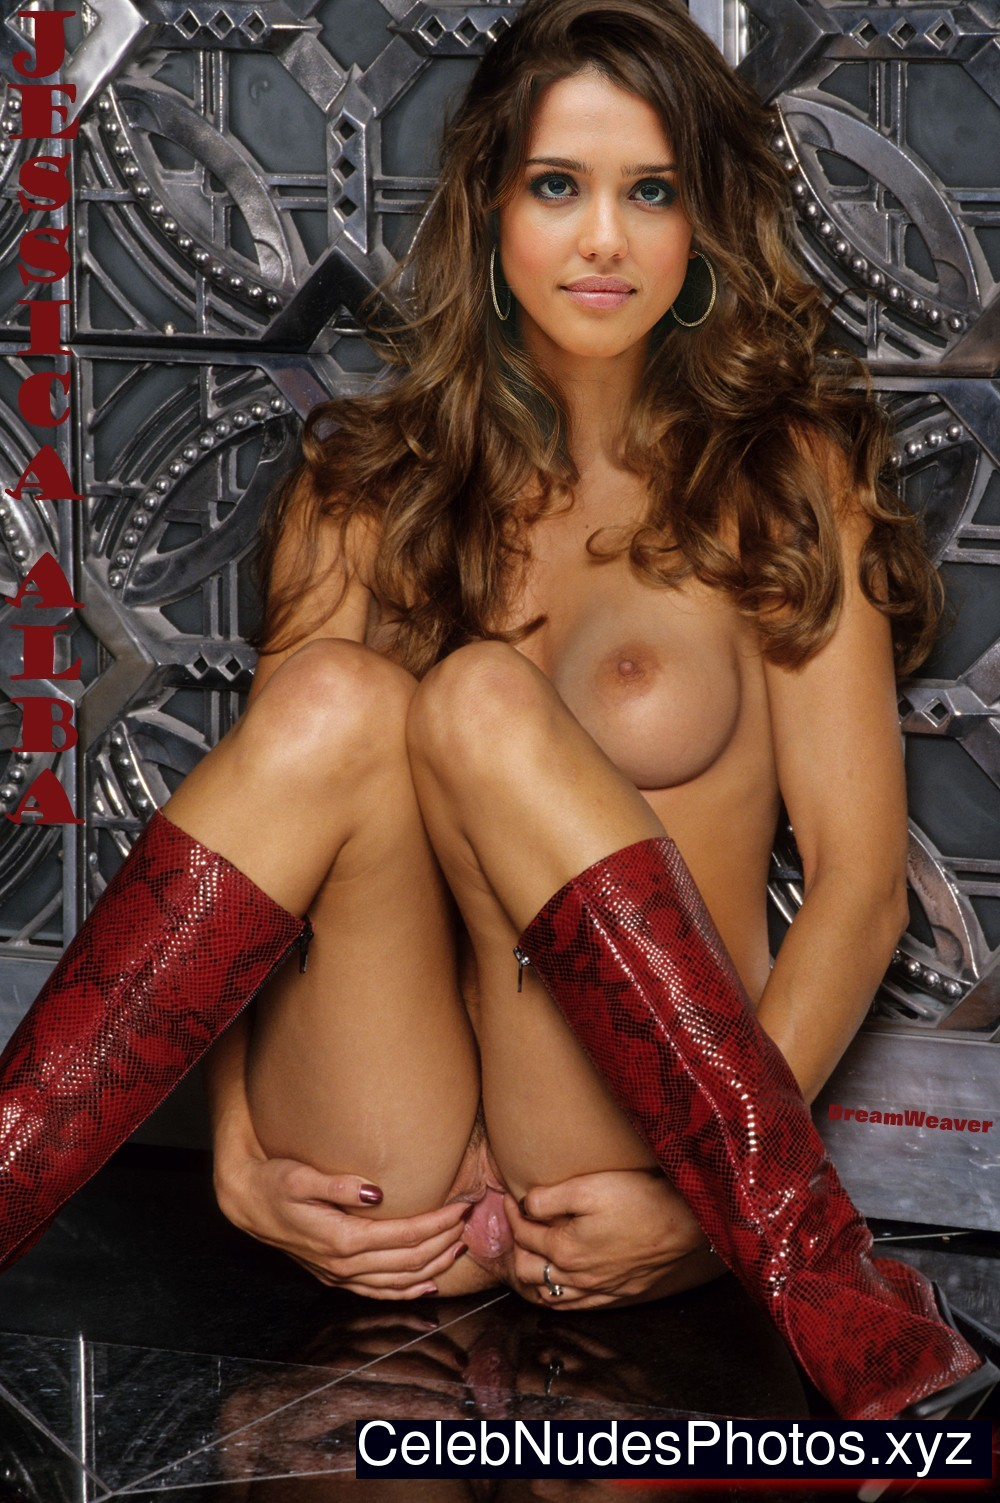 Remarkable, Free fake jessica alba nude pic think